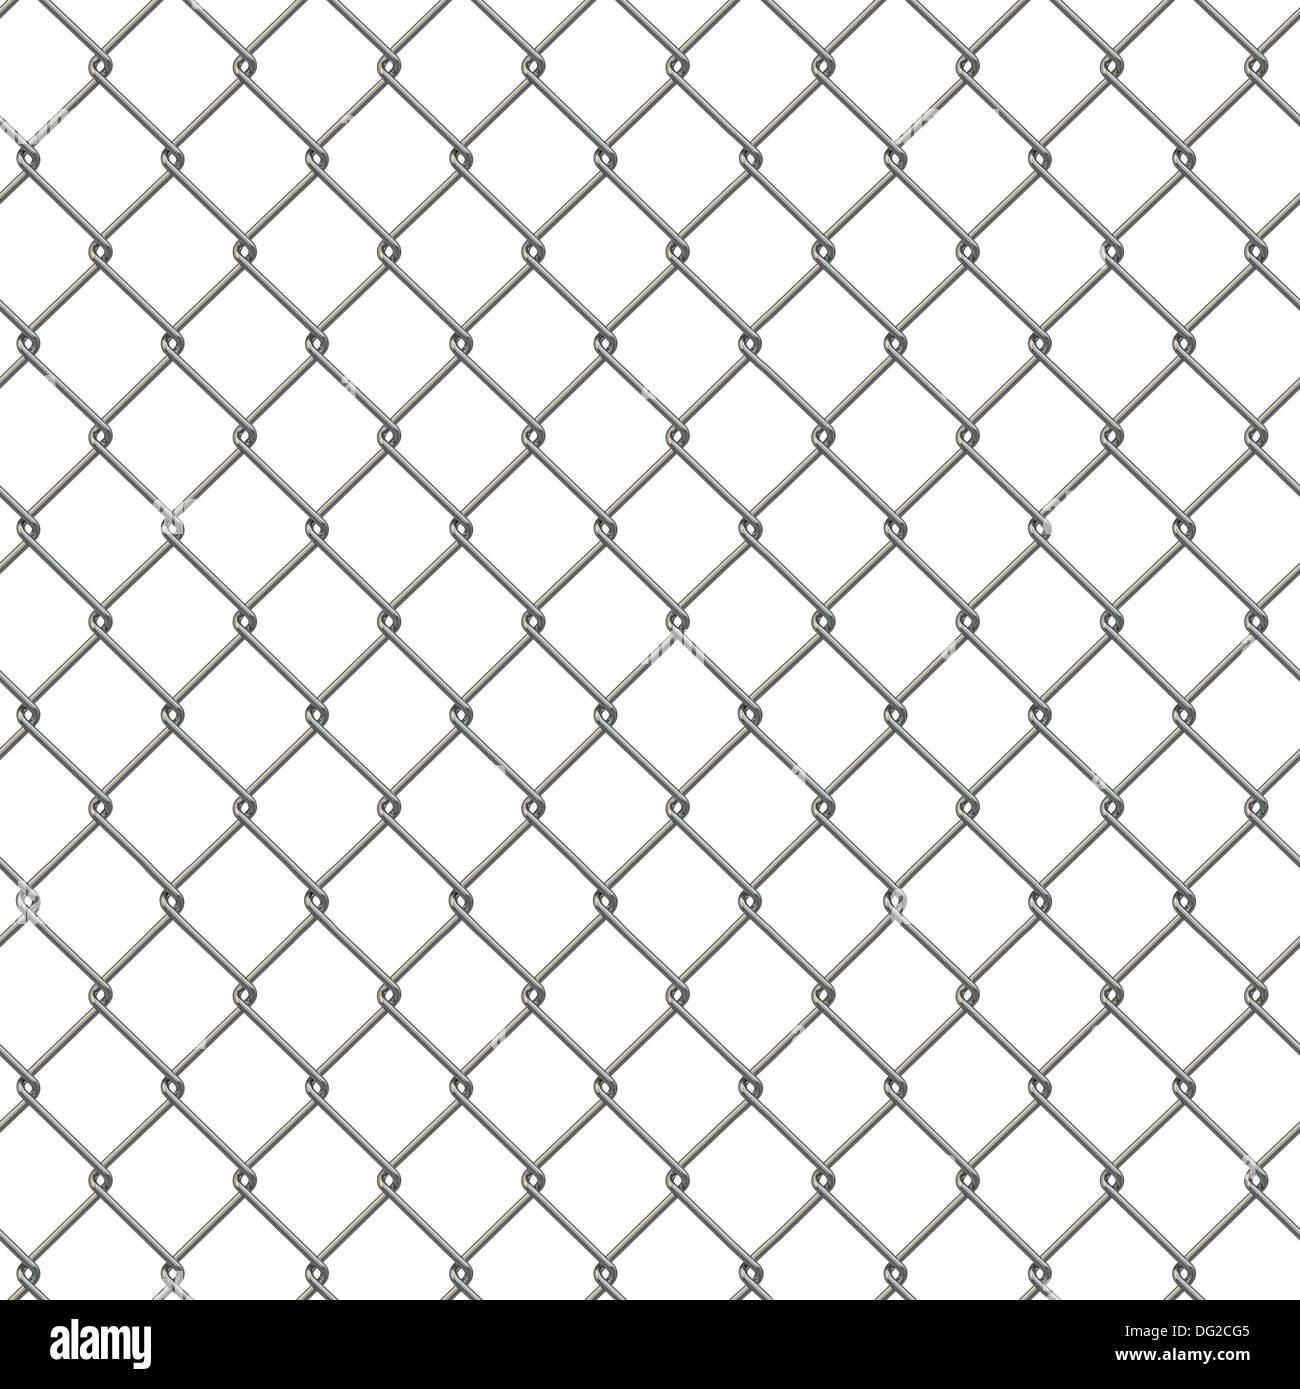 Tiling texture of barbed wire fence. 3d Stock Photo: 61519365 - Alamy